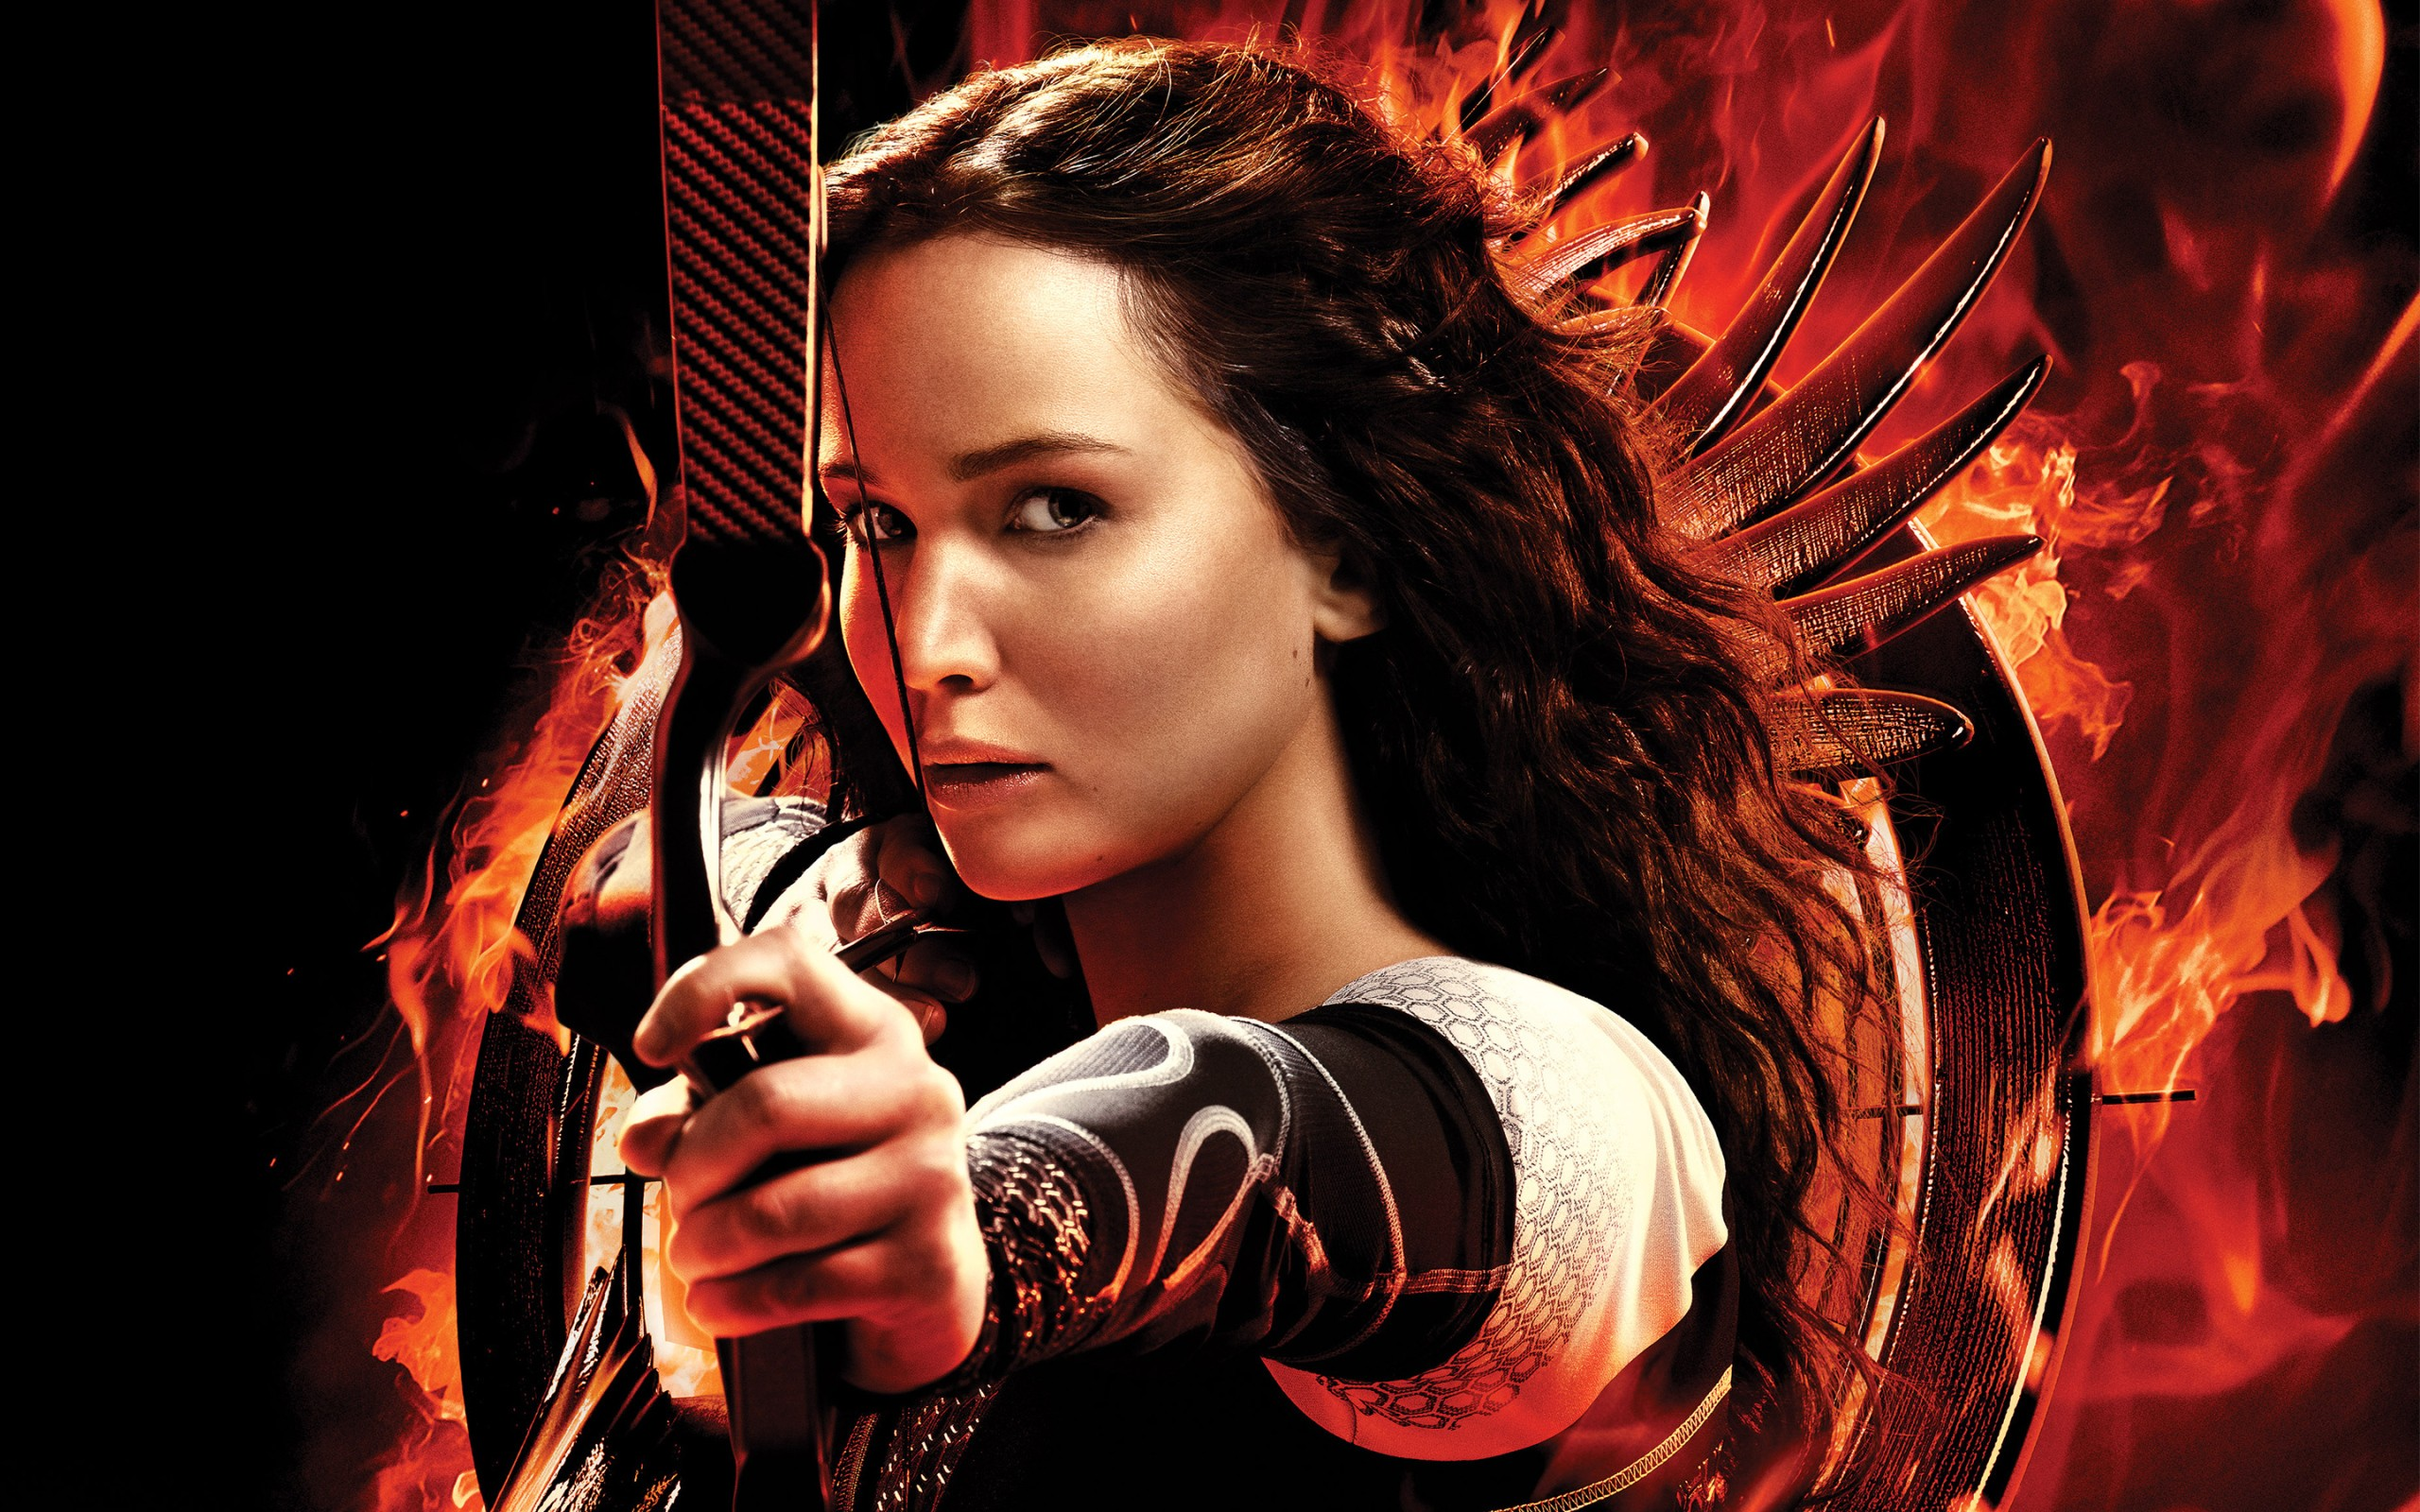 a review of the hunger games movie The hunger games is an effective entertainment, and jennifer lawrence is strong and convincing in the central role but the film leapfrogs obvious questions in its path, and avoids the opportunities sci-fi provides for social criticism compare its world with the dystopias in  gattaca  or  the truman show .